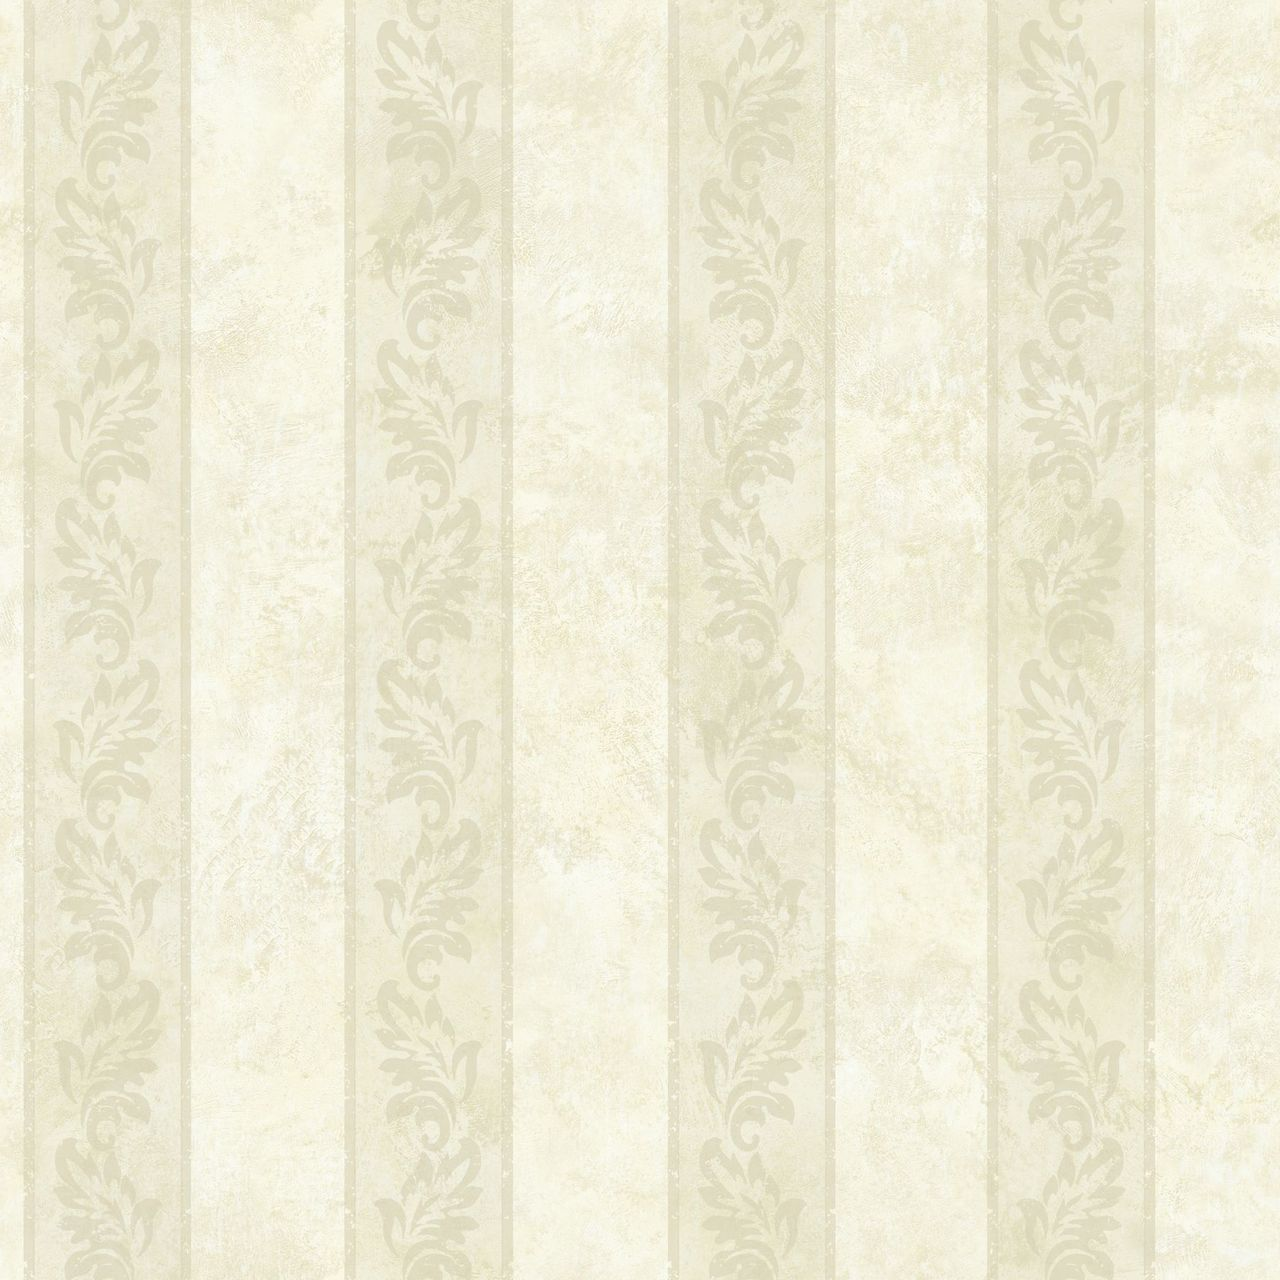 Warner Studios by Brewster ARB67586 Arbor Rose Evelin Beige Ornate 1280x1280